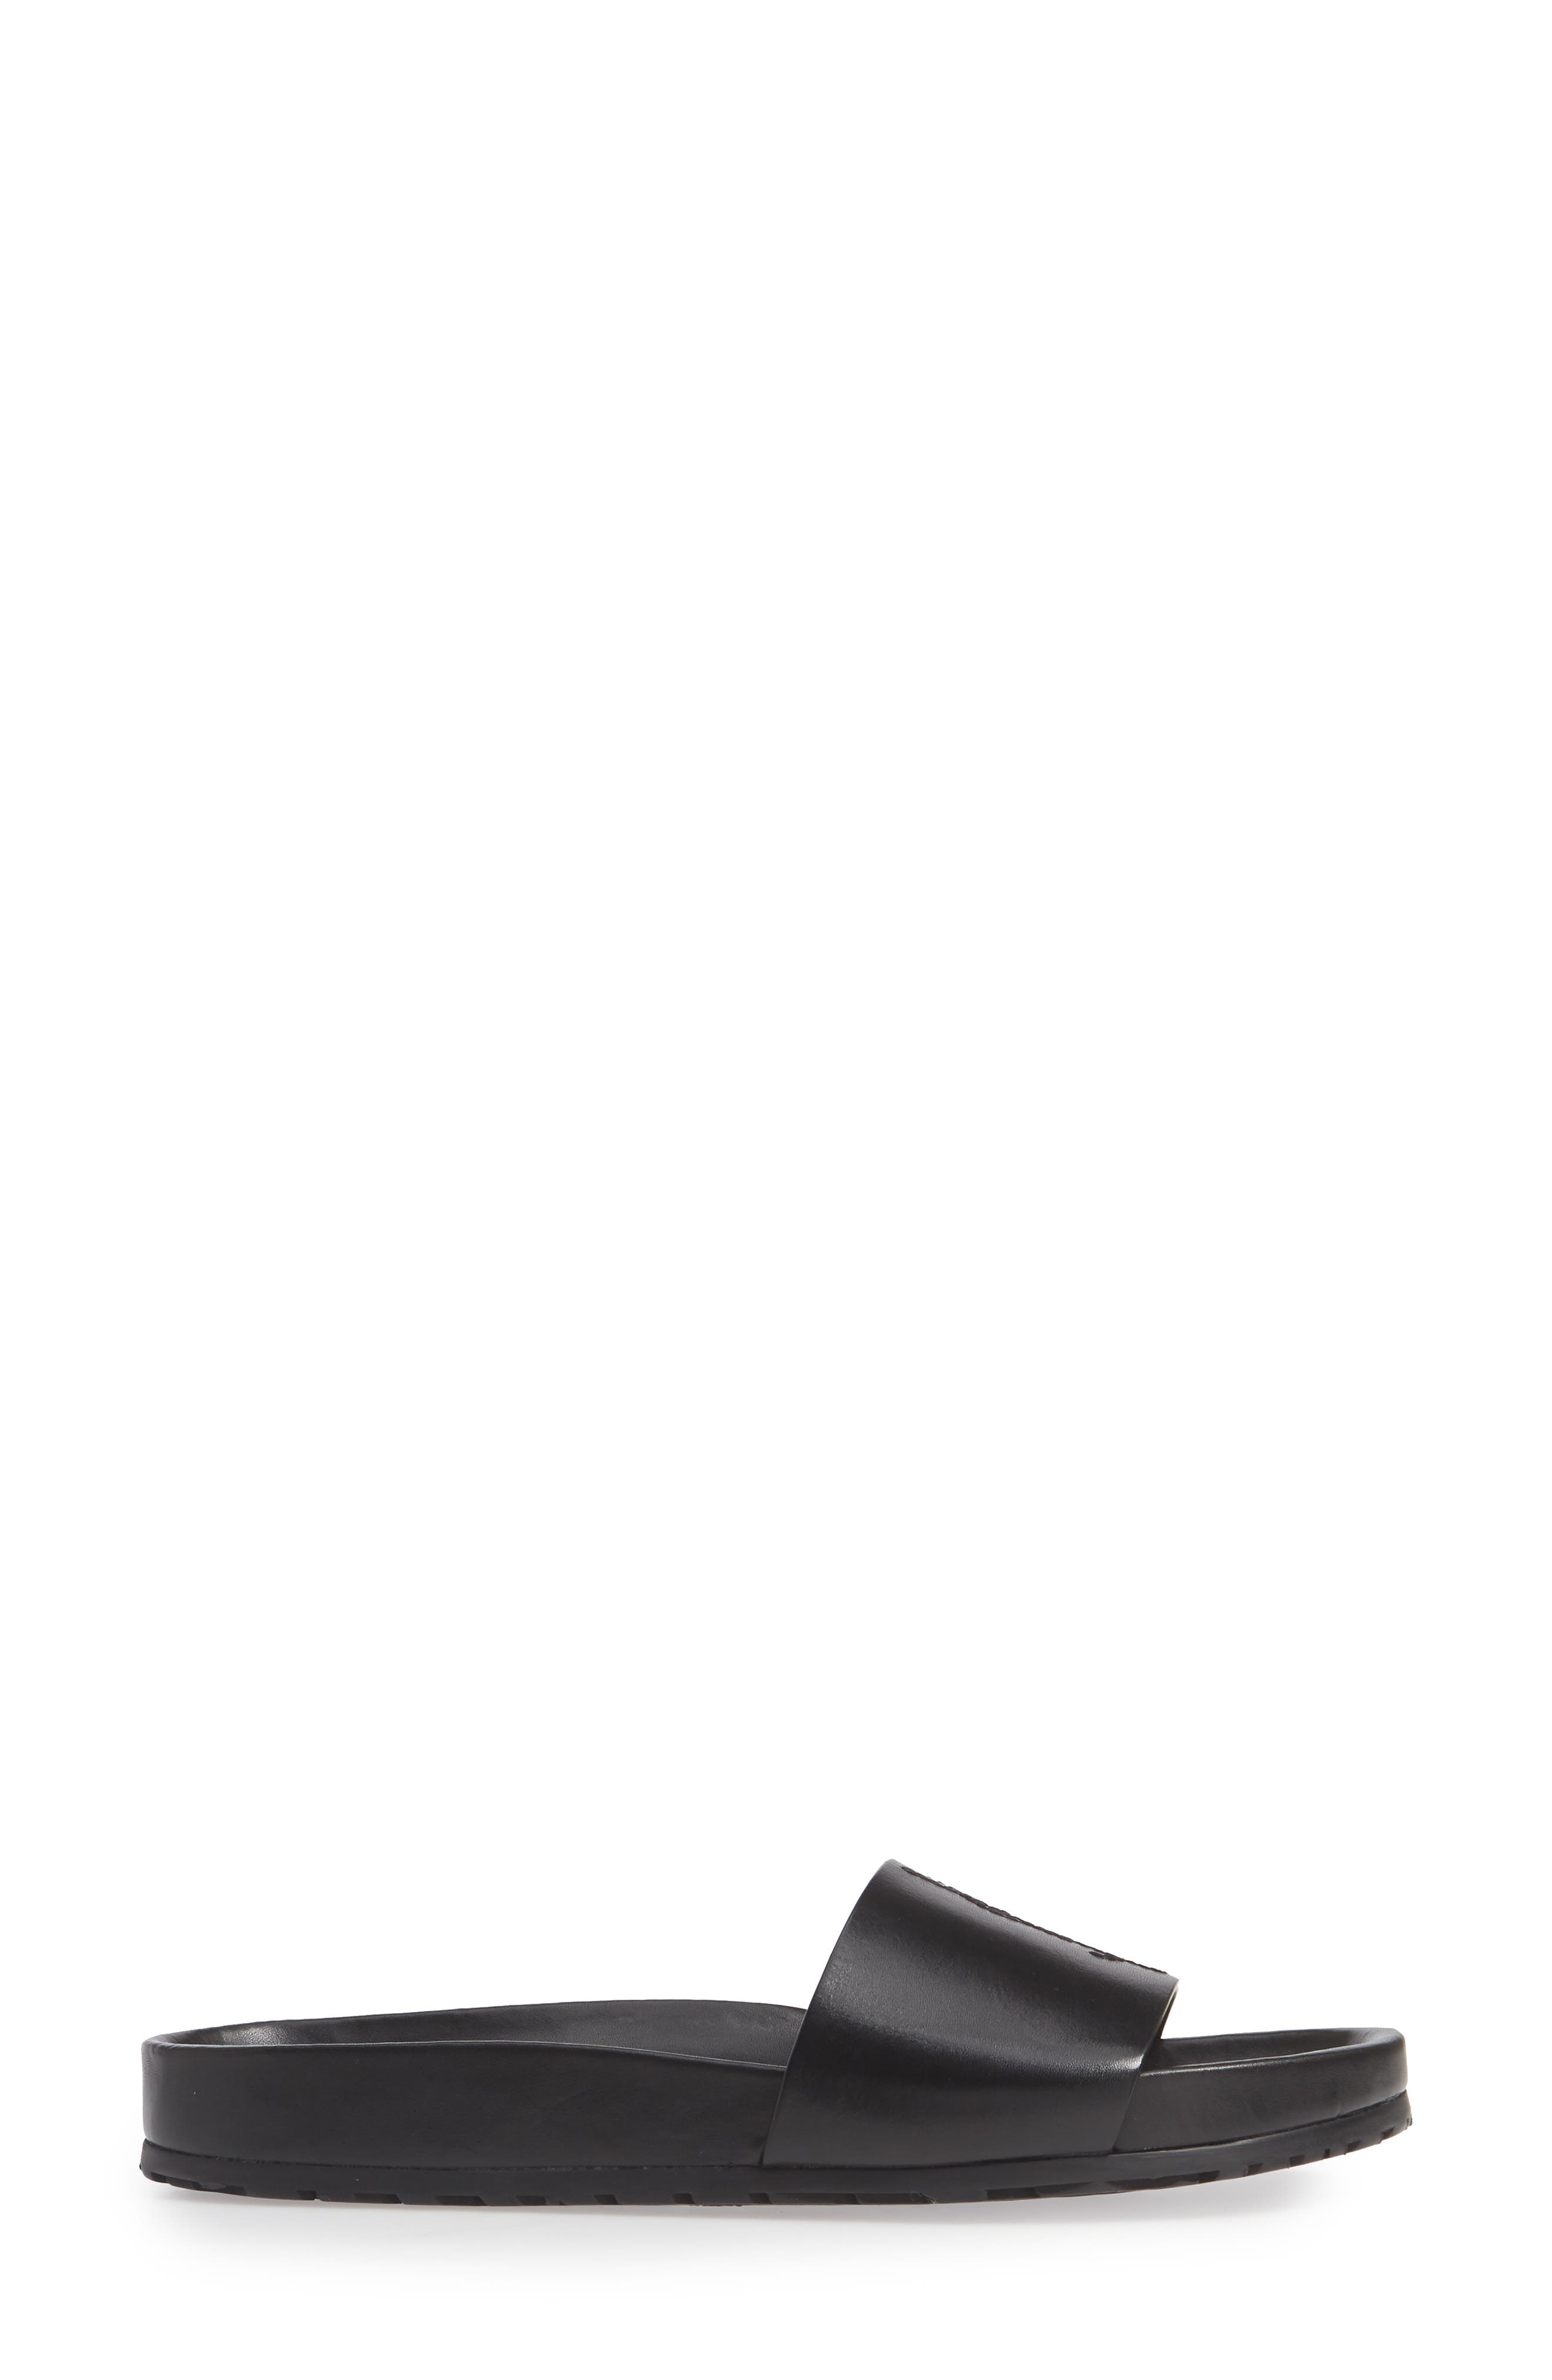 SAINT LAURENT, Jimmy Logo Slide Sandal, Alternate thumbnail 3, color, BLACK LEATHER